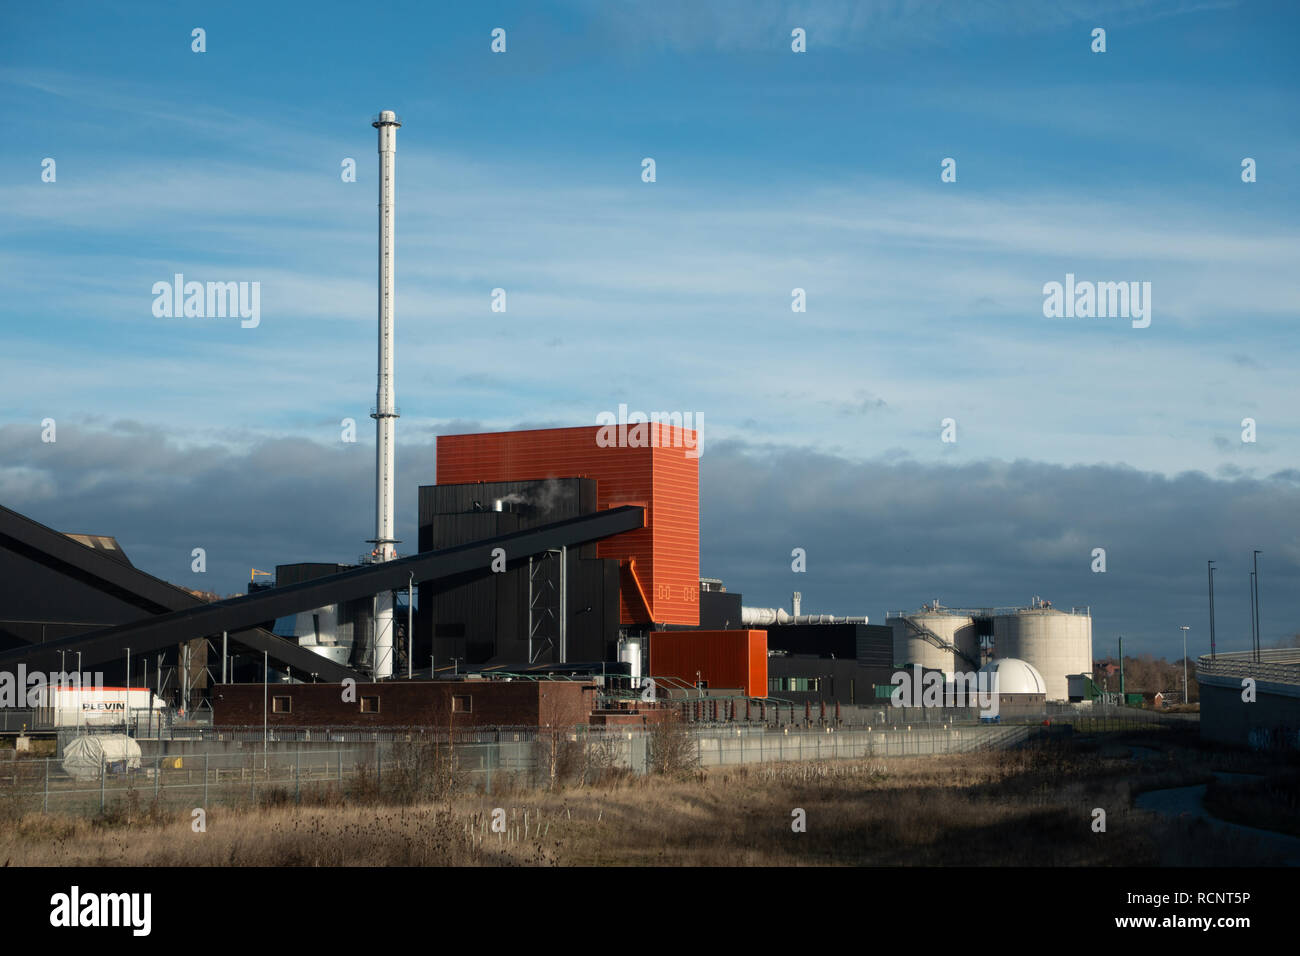 Blackburn Meadows Biomass Plant in the Lower Don Valley of Rotherham, South Yorkshire. - Stock Image